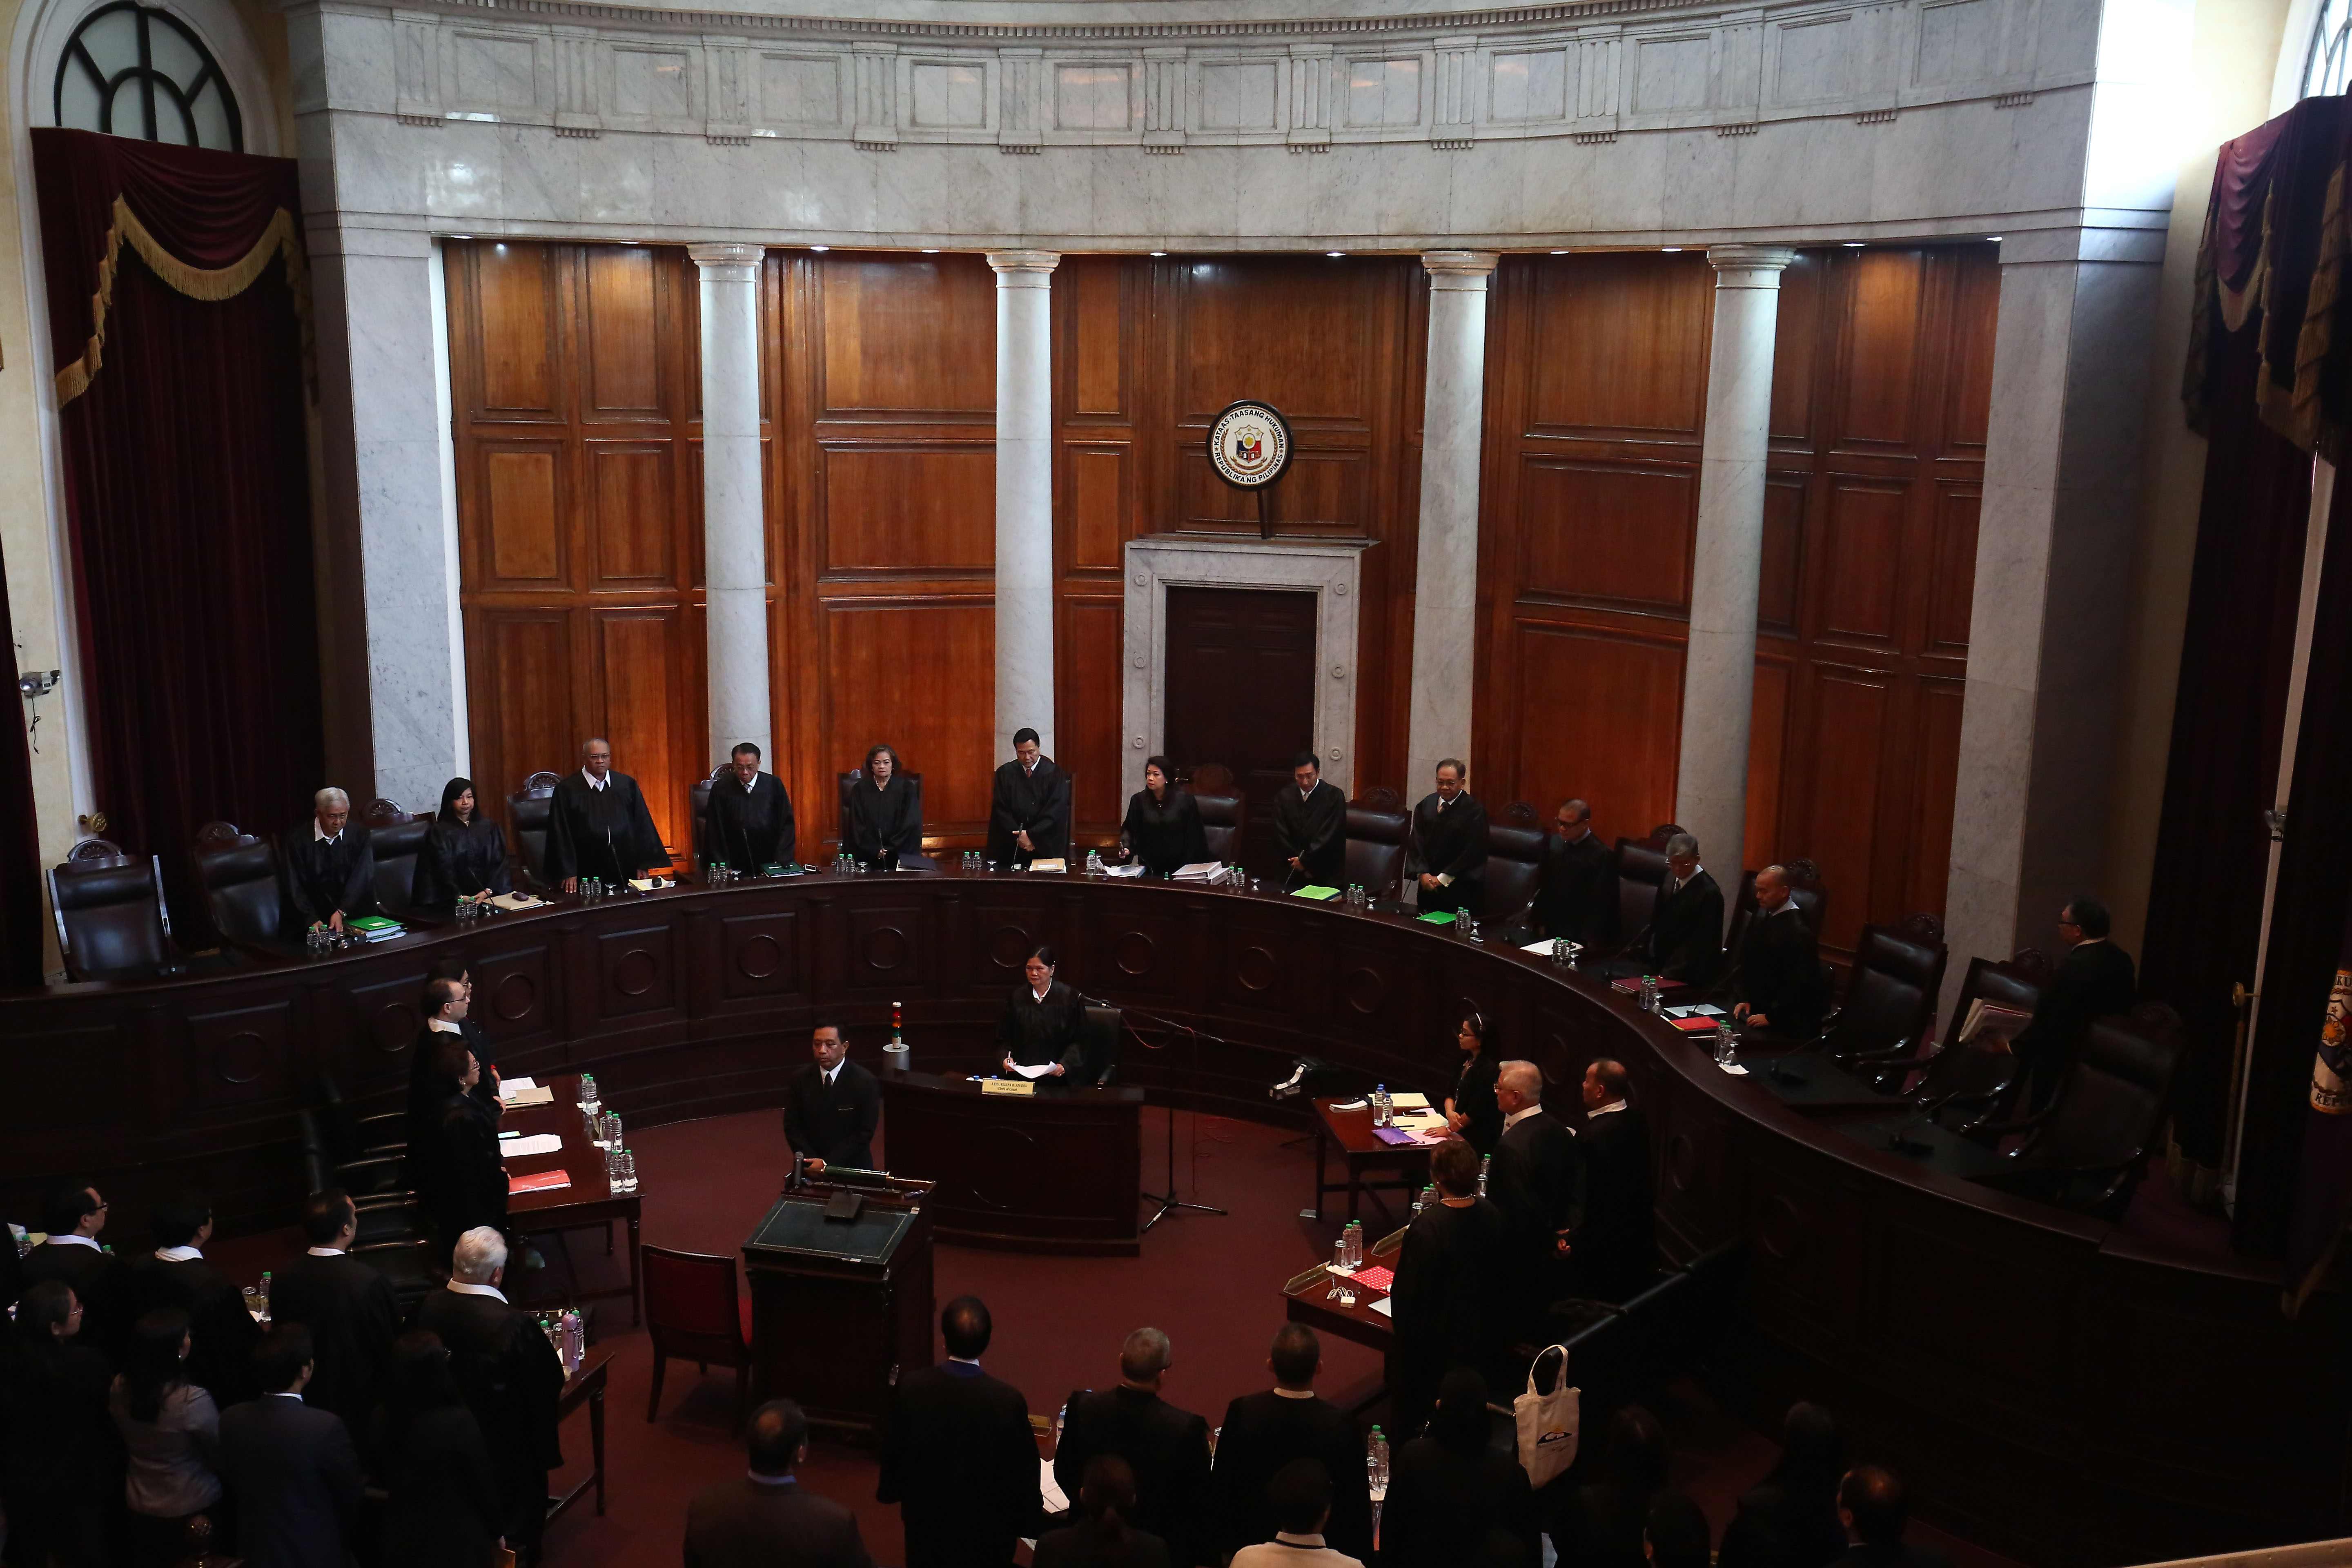 ORAL ARGUMENTS. Supreme Court justices enter as the oral arguments on the proposed burial of late dictator Ferdinand Marcos at the Libingan ng mga Bayani starts at the Supreme Court in Manila on August 31, 2016. Photo by Ben Nabong/Rappler